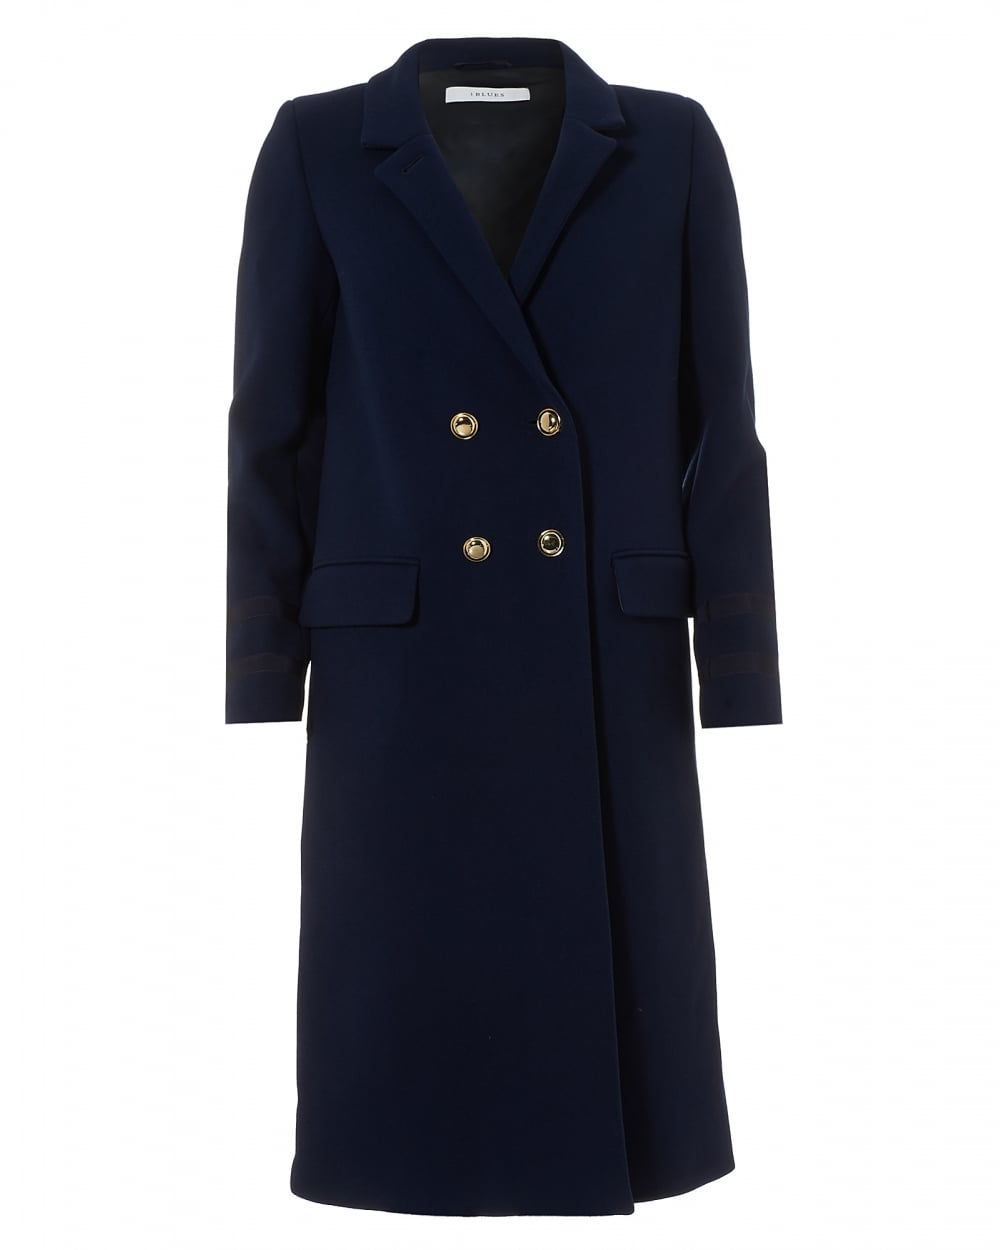 Find great deals on eBay for womens navy pea coat. Shop with confidence.